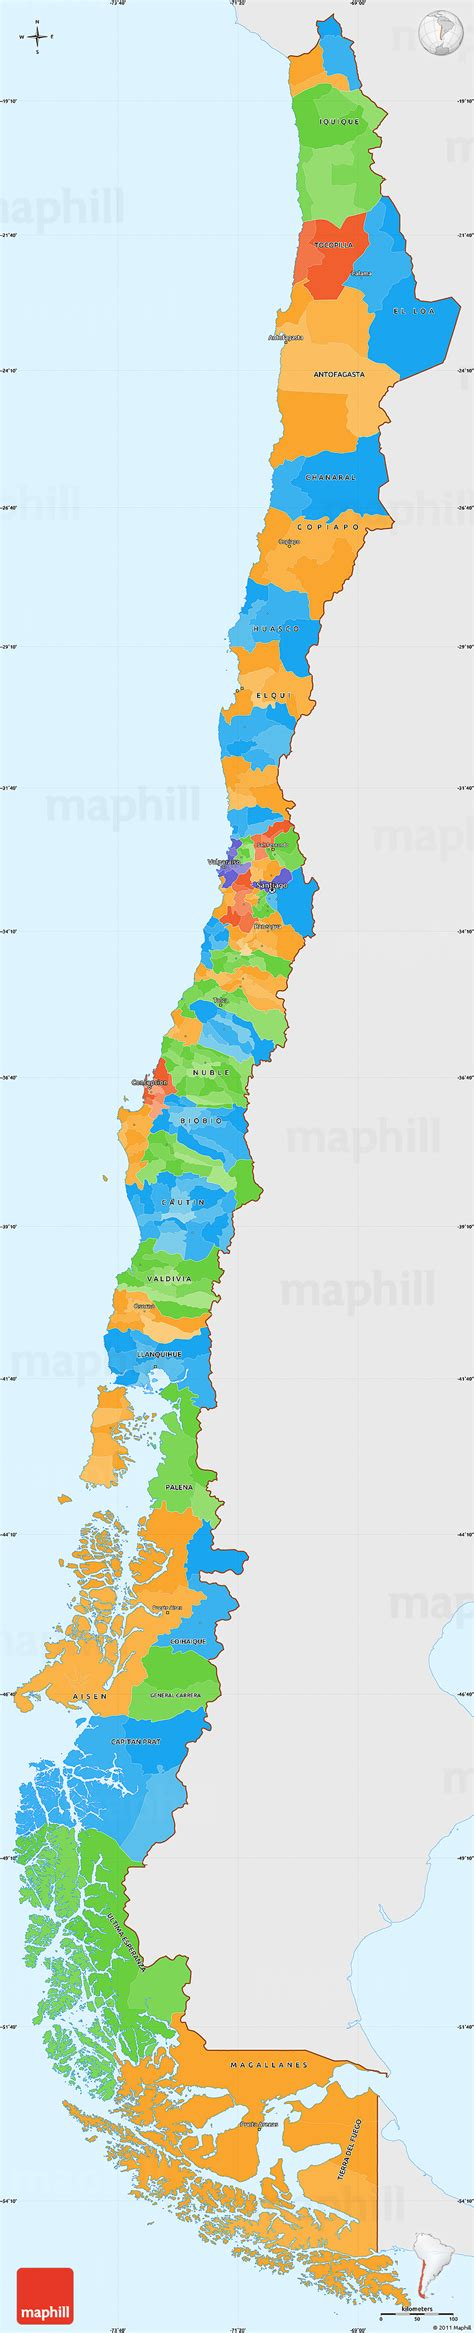 chile color political simple map of chile single color outside